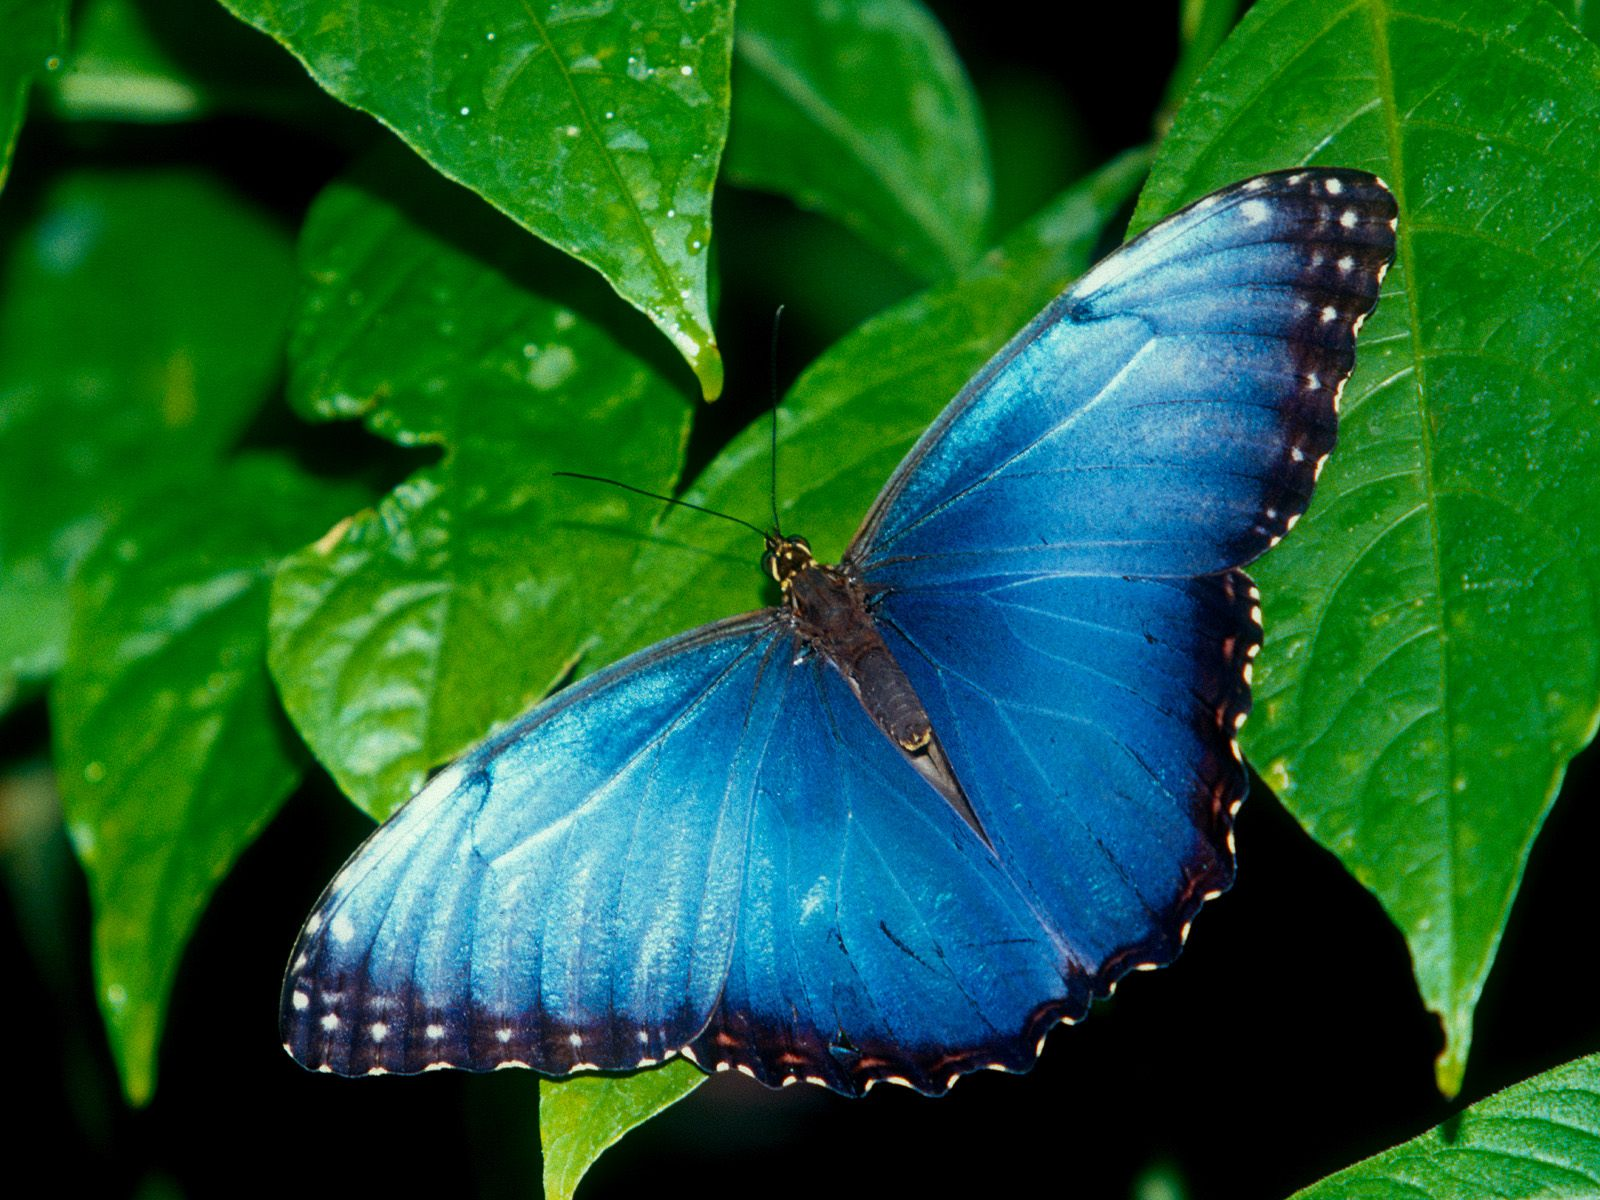 Butterfly Wallpaper 3D Wallpaper Nature Wallpaper Download 1600x1200